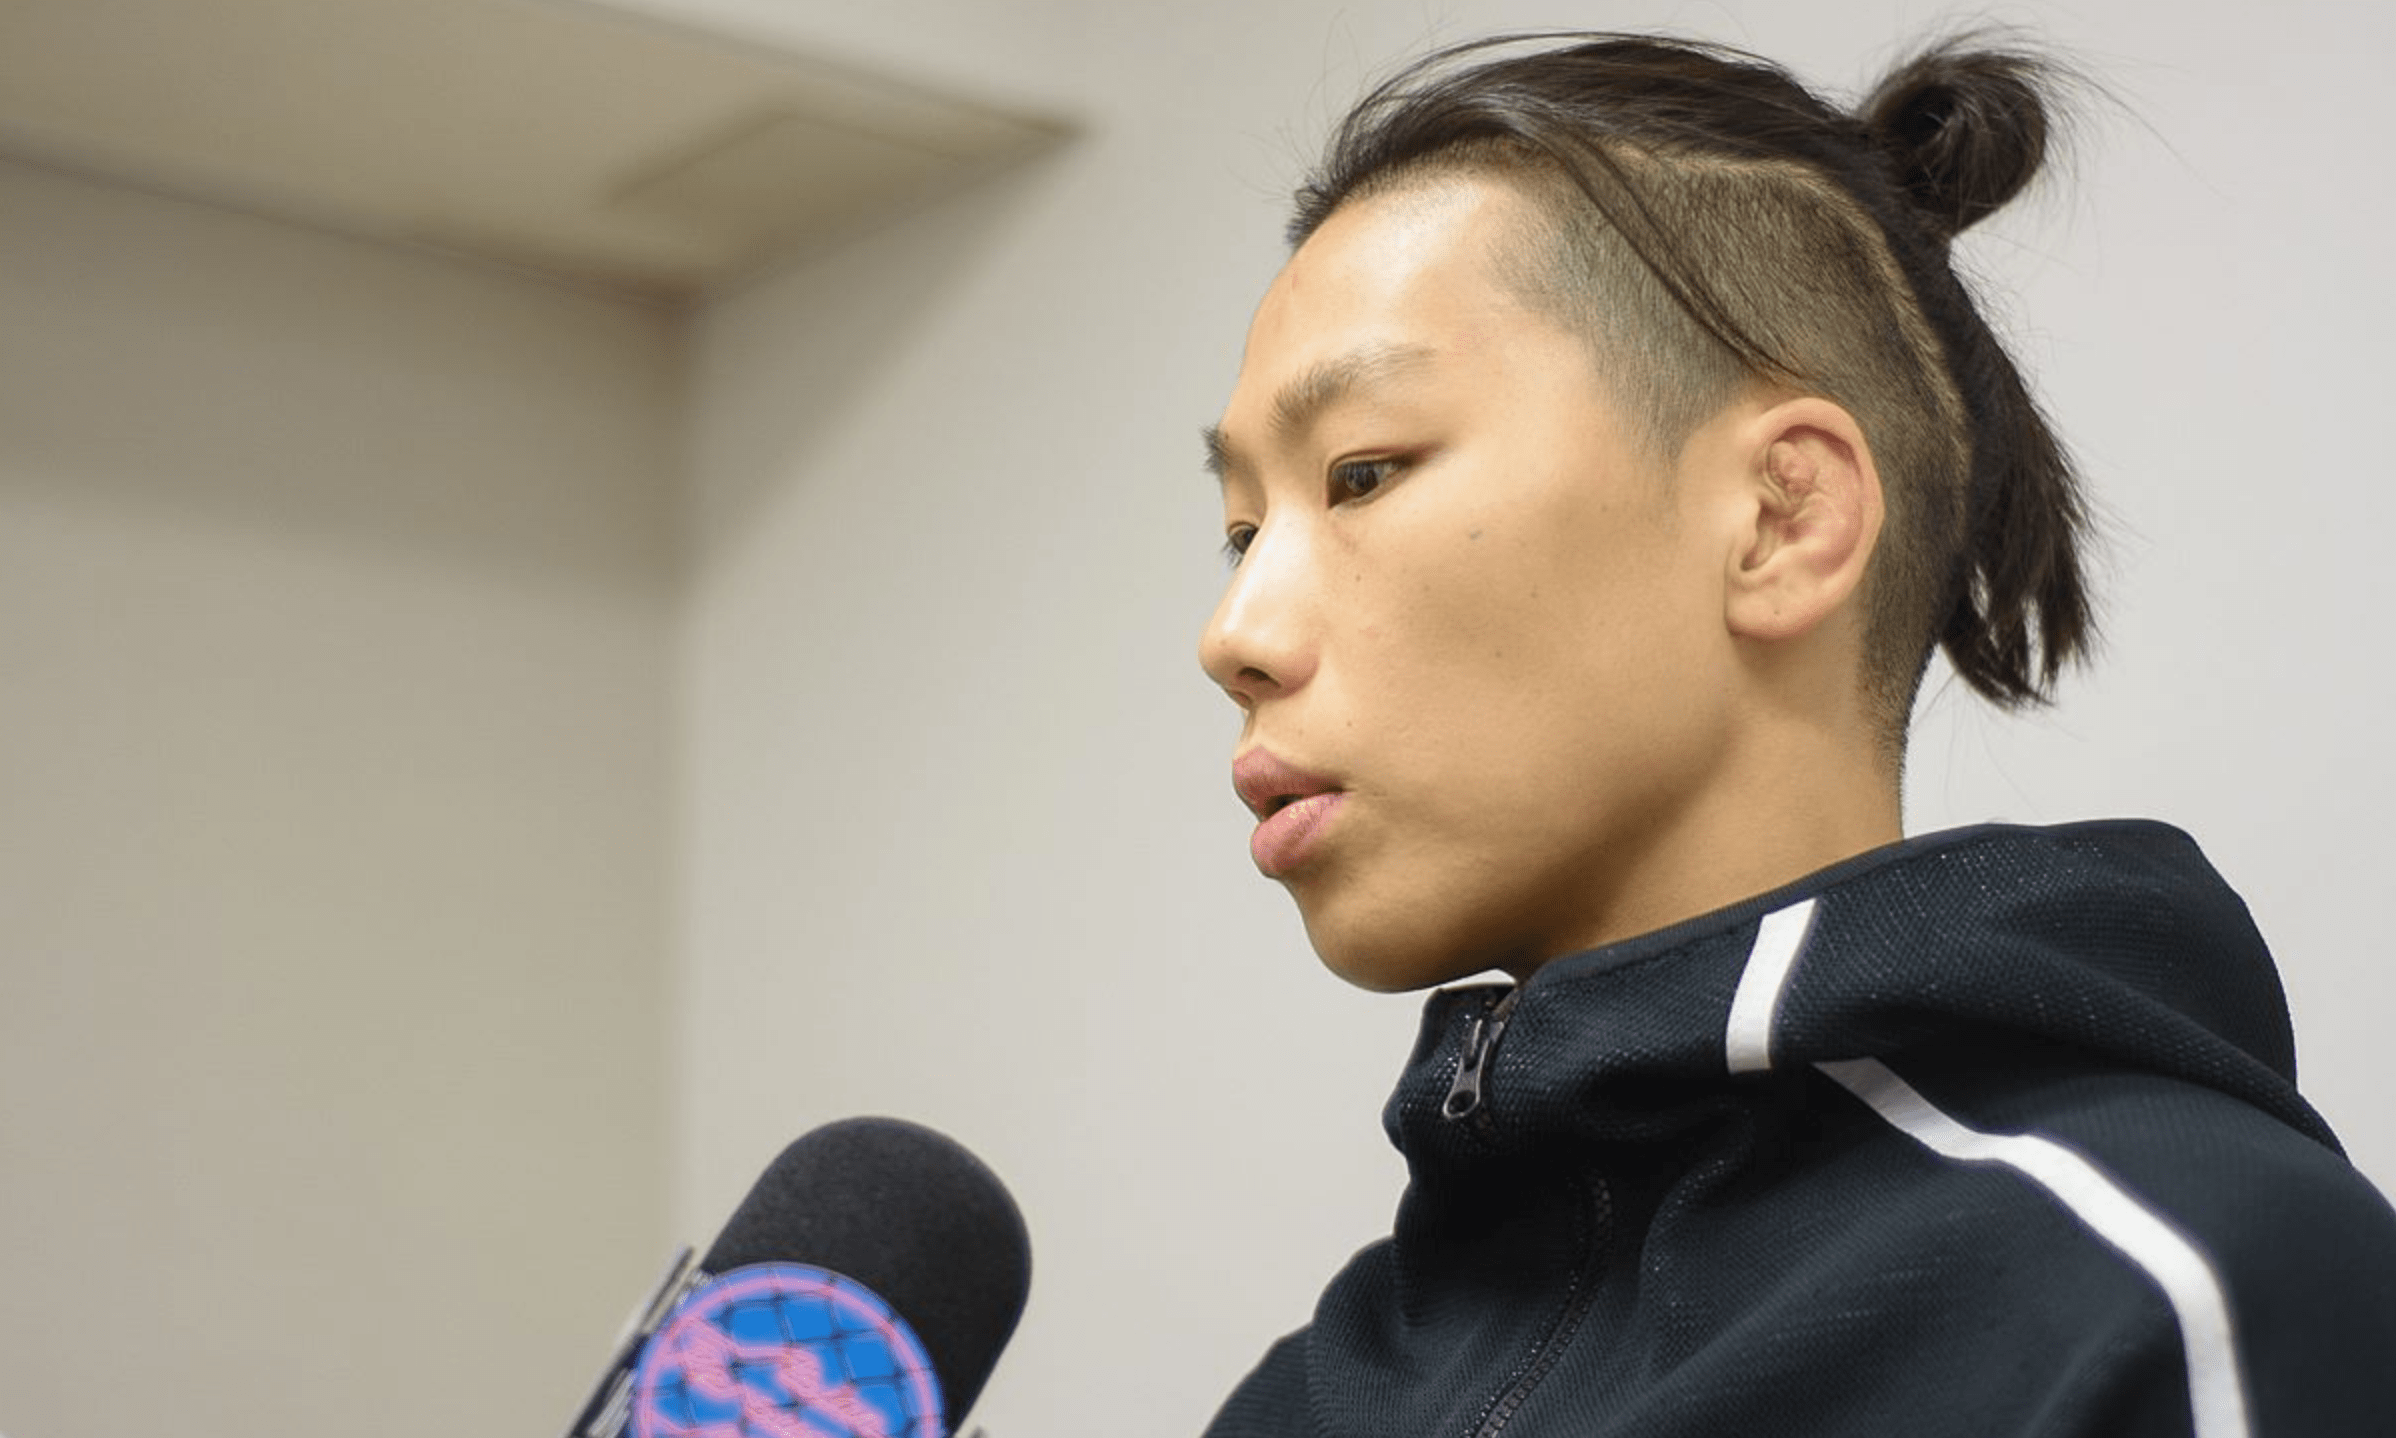 Exclusive: Xiong Jing Nan Interview Ahead Of ONE: A New Era (Video)